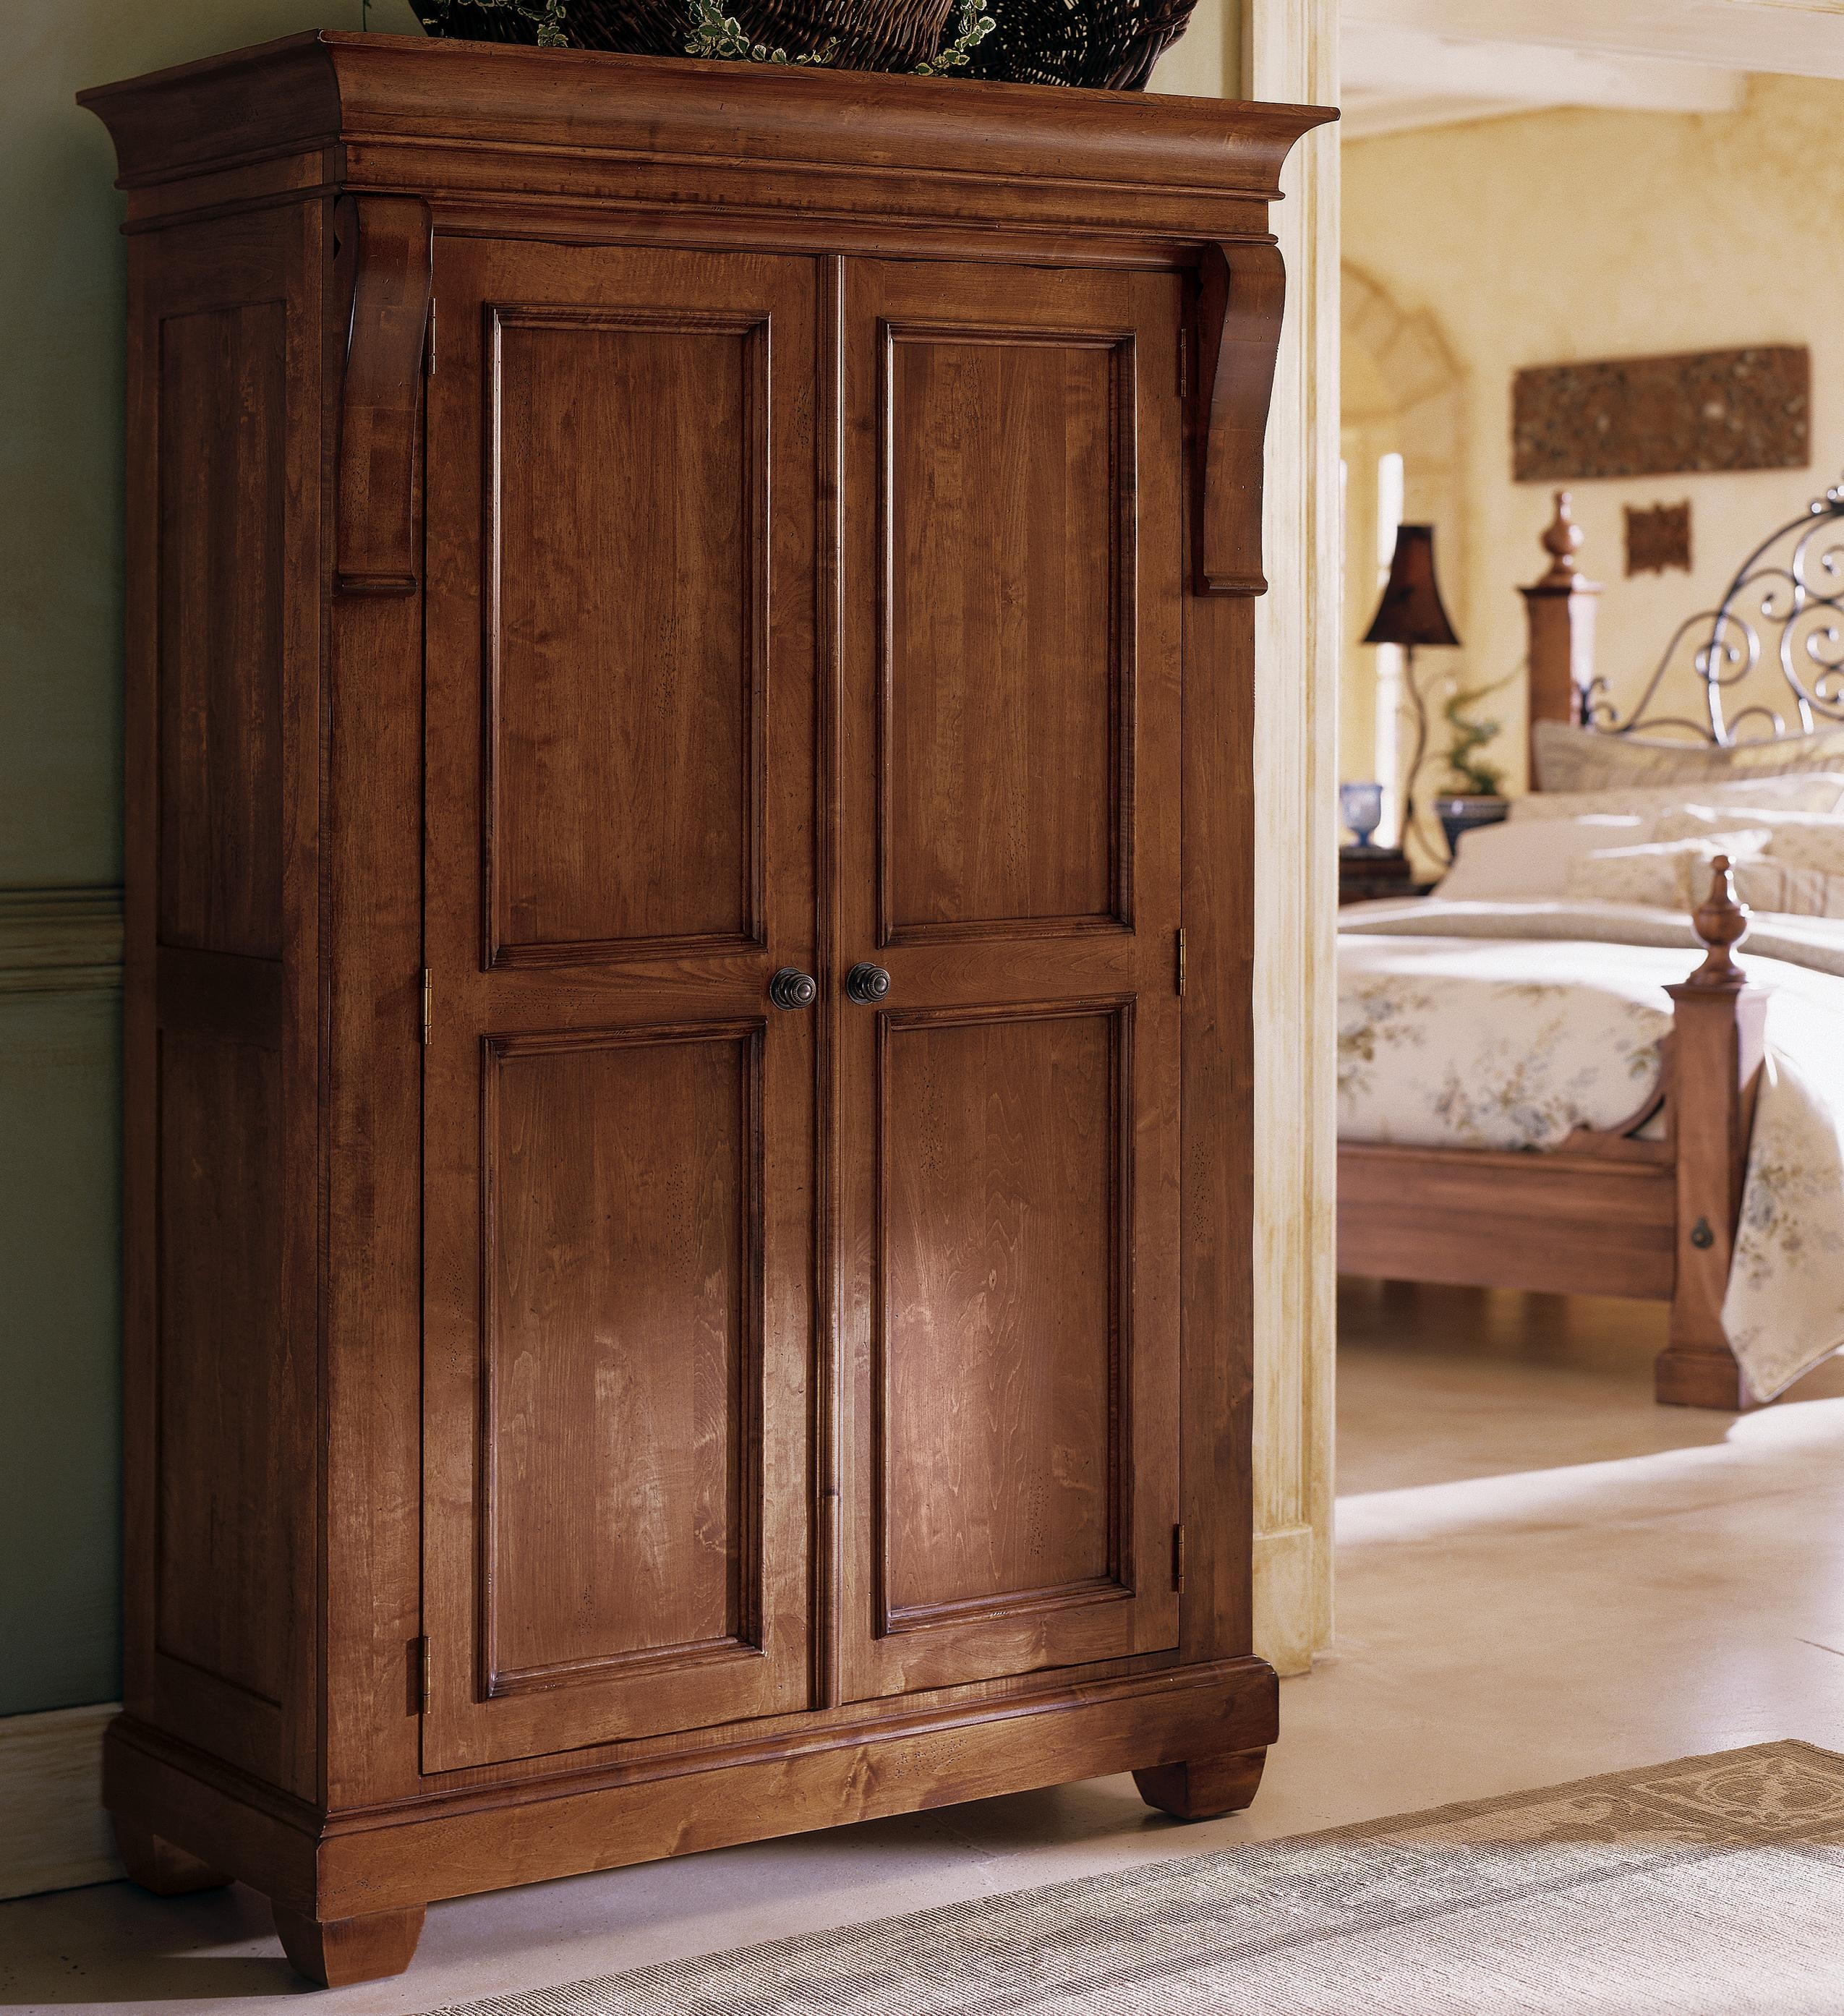 Furniture Fancy Wardrobe Armoire For Wardrobe Organizer Idea Pertaining To Solid Wood Wardrobe Closets (View 7 of 25)